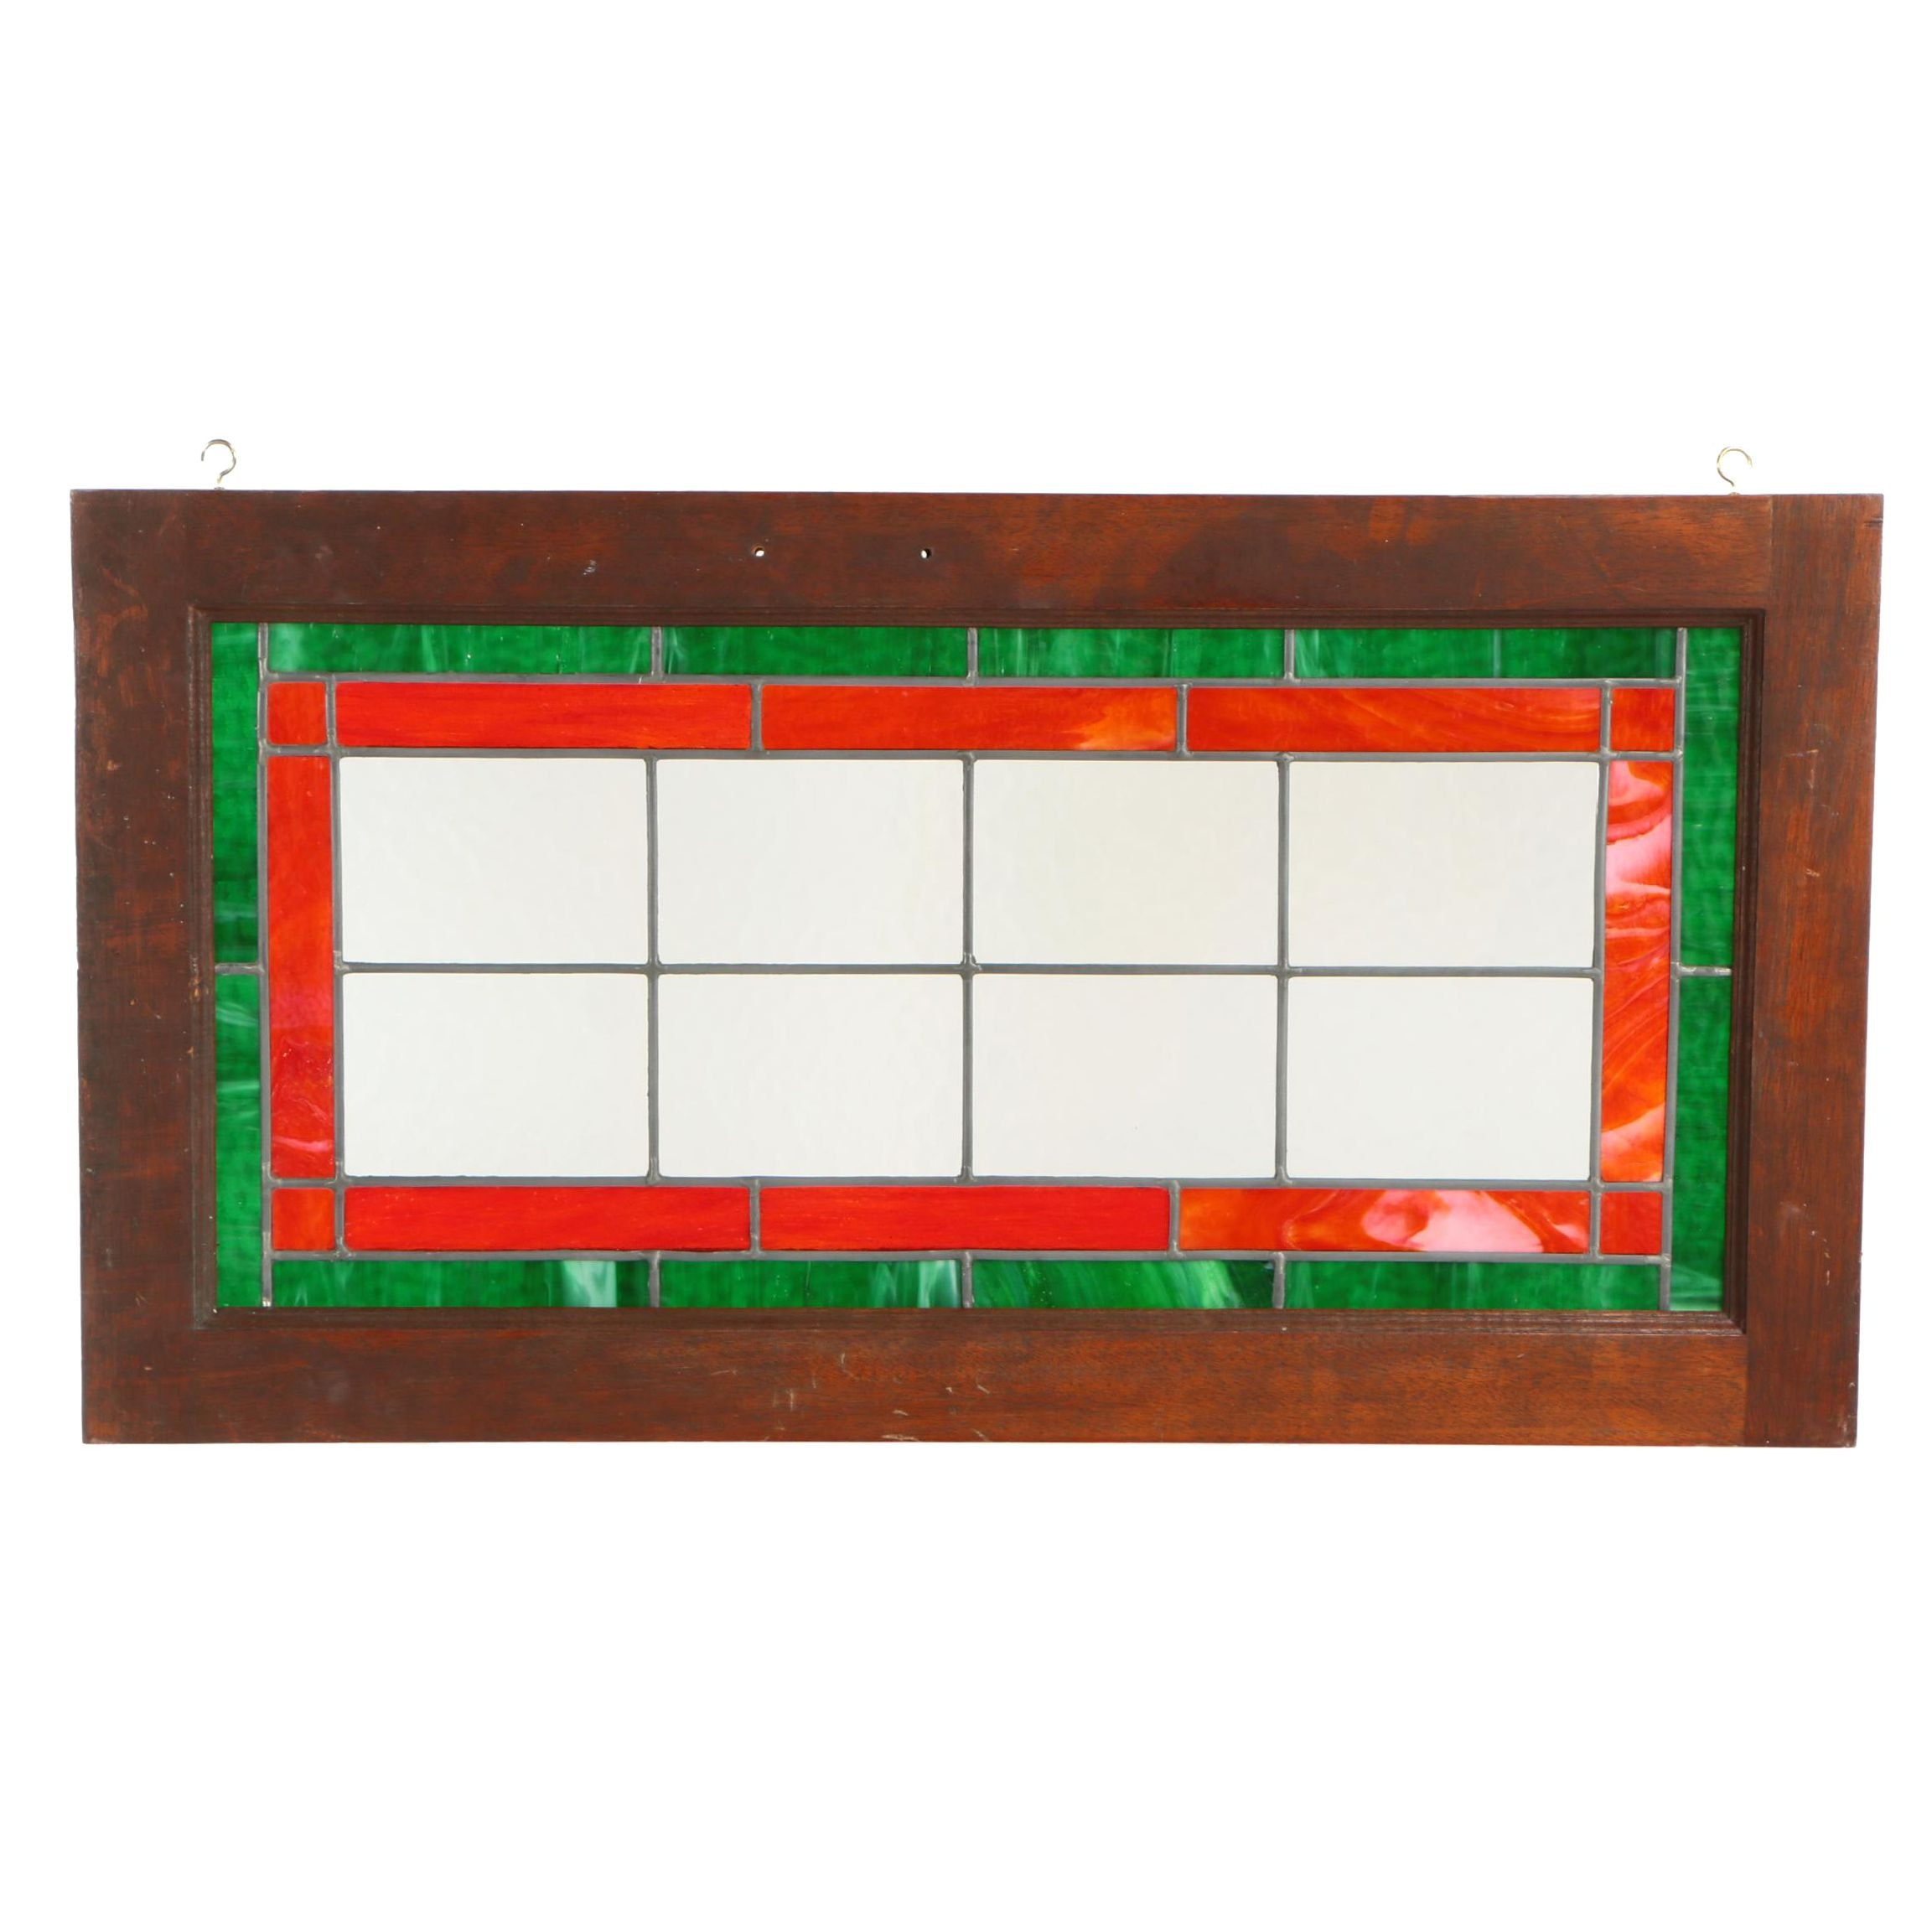 Mahogany-Framed Leaded and Stained Glass Window Panel, 20th Century